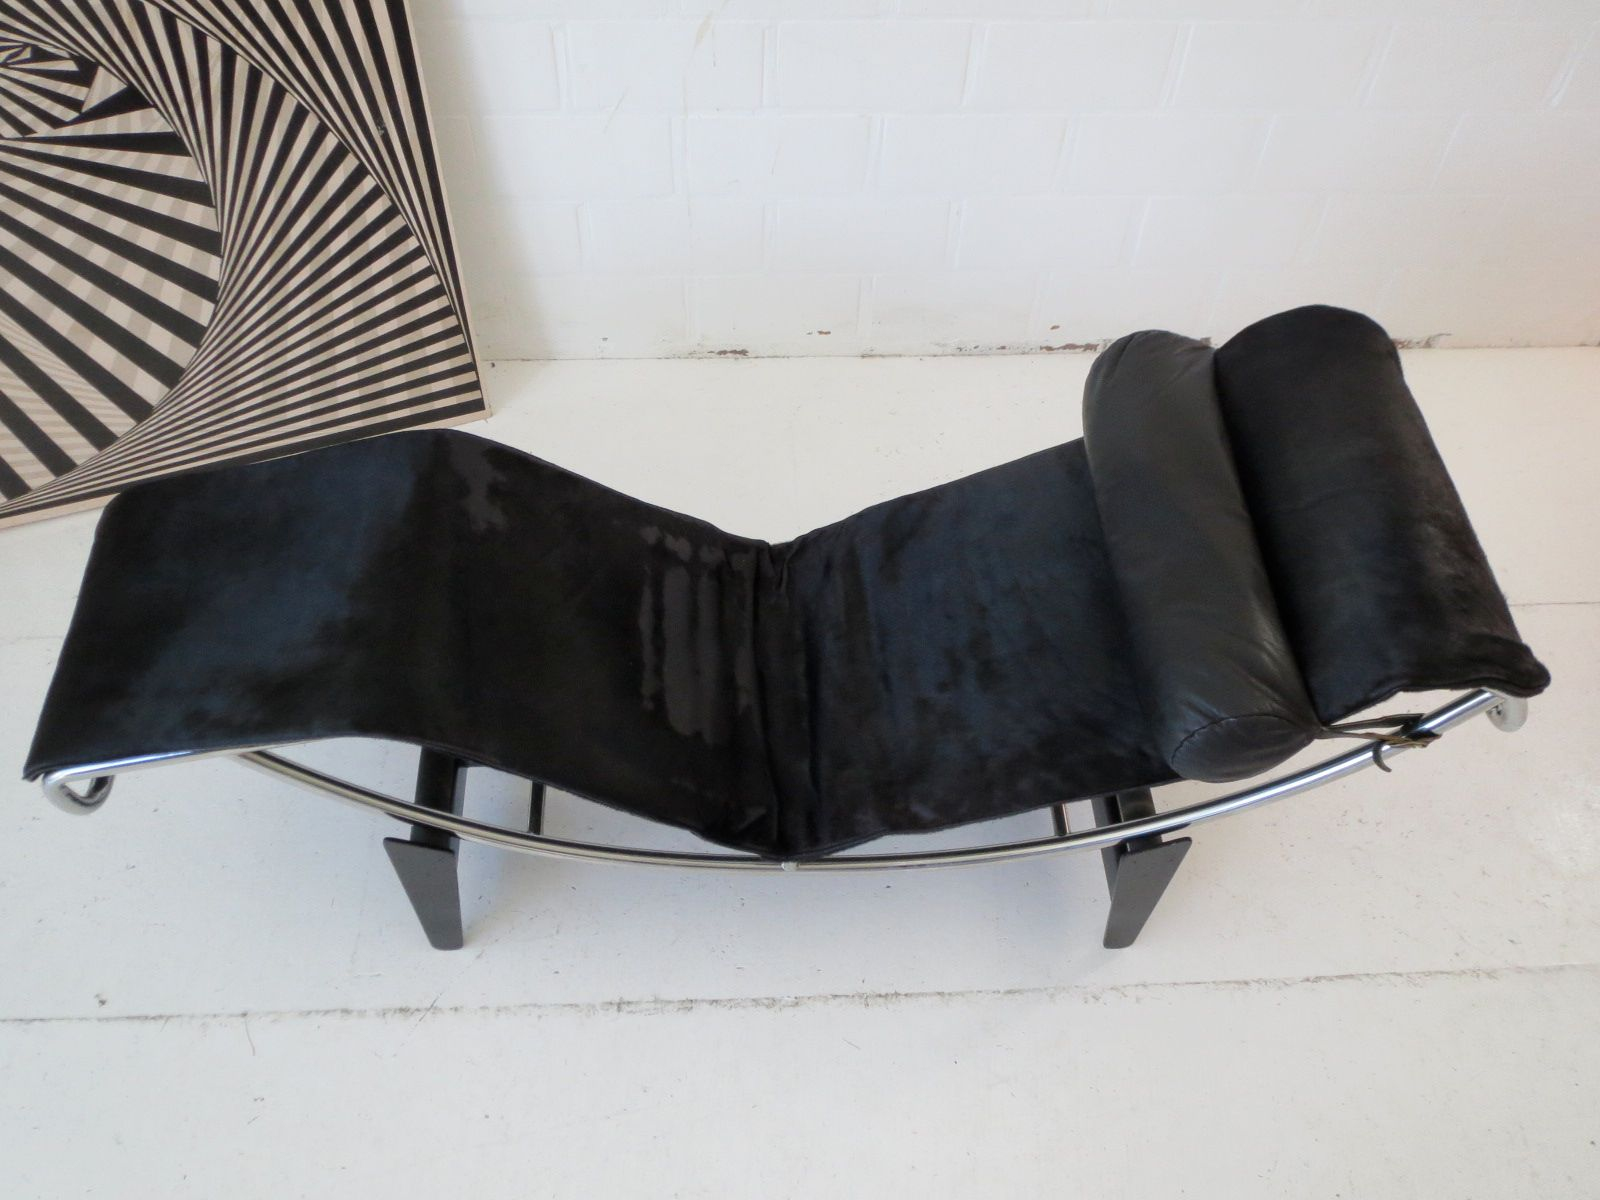 Early under 750 numbered lc4 chaise longue by le for Chaise longue by le corbusier